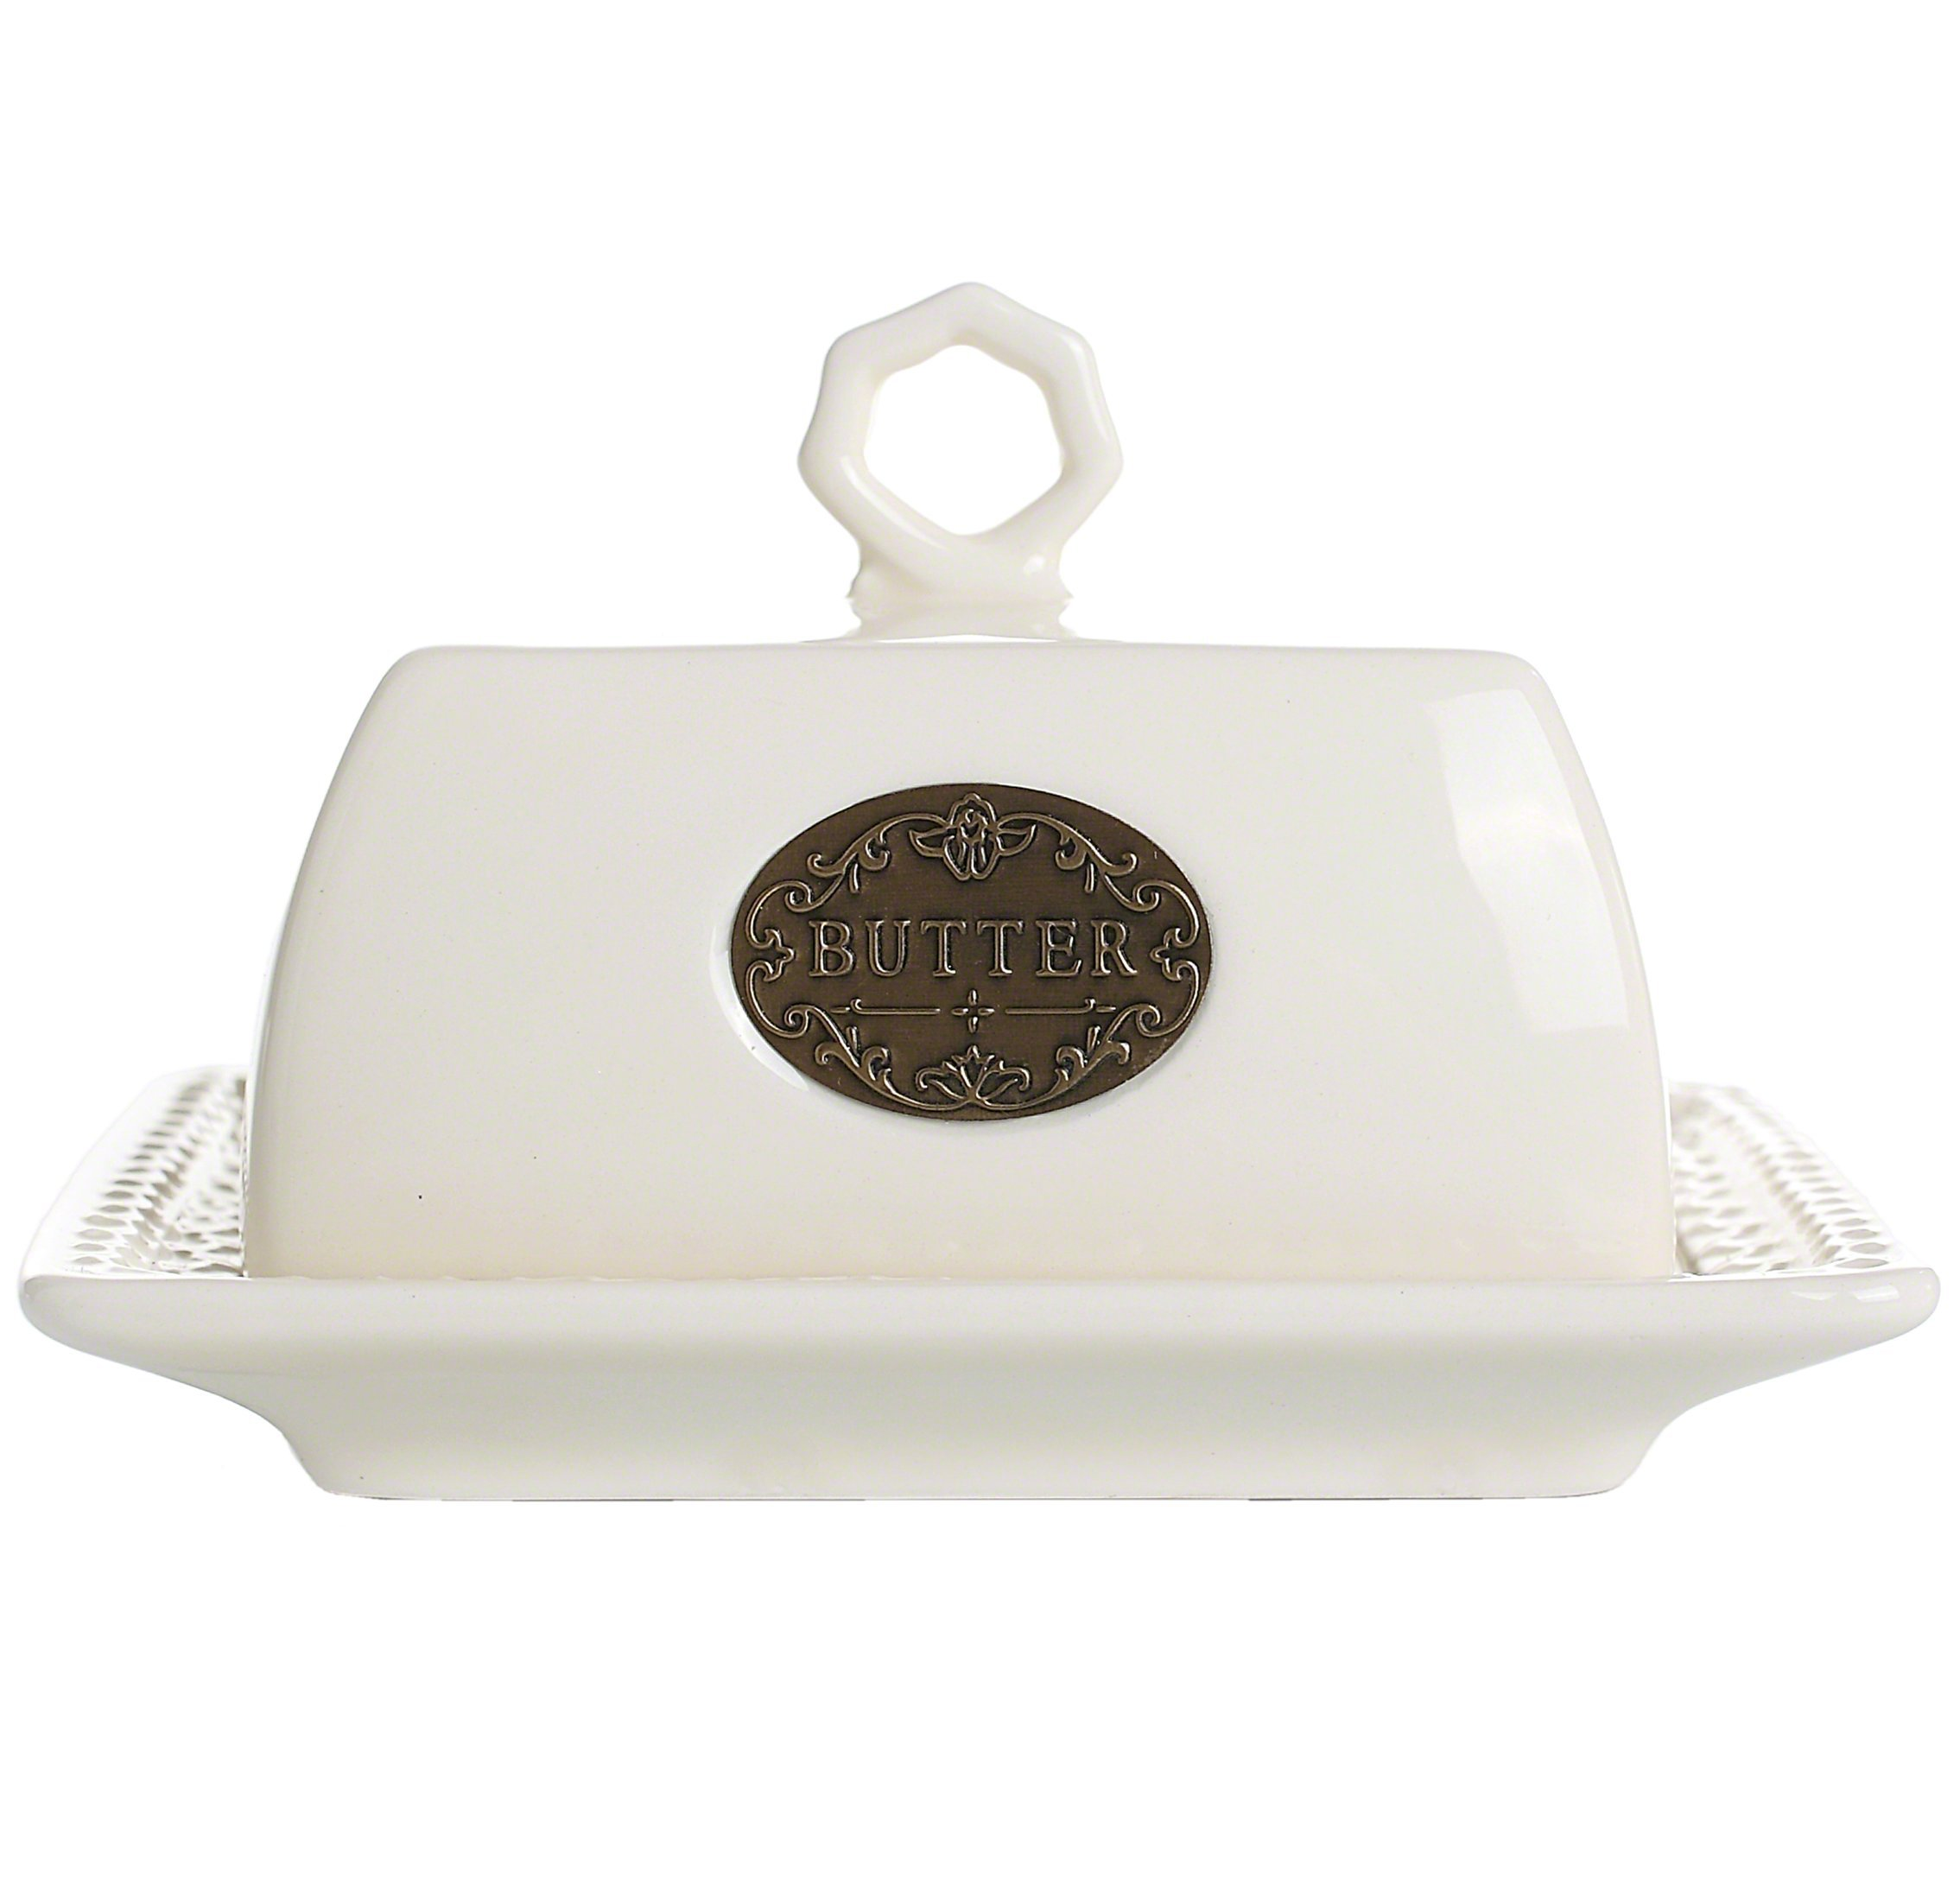 LA JOLIE MUSE Vintage Butter Dish with Lid Handle Cover, 6.9 Inch Ceramic Keeper, Larger New Version,White